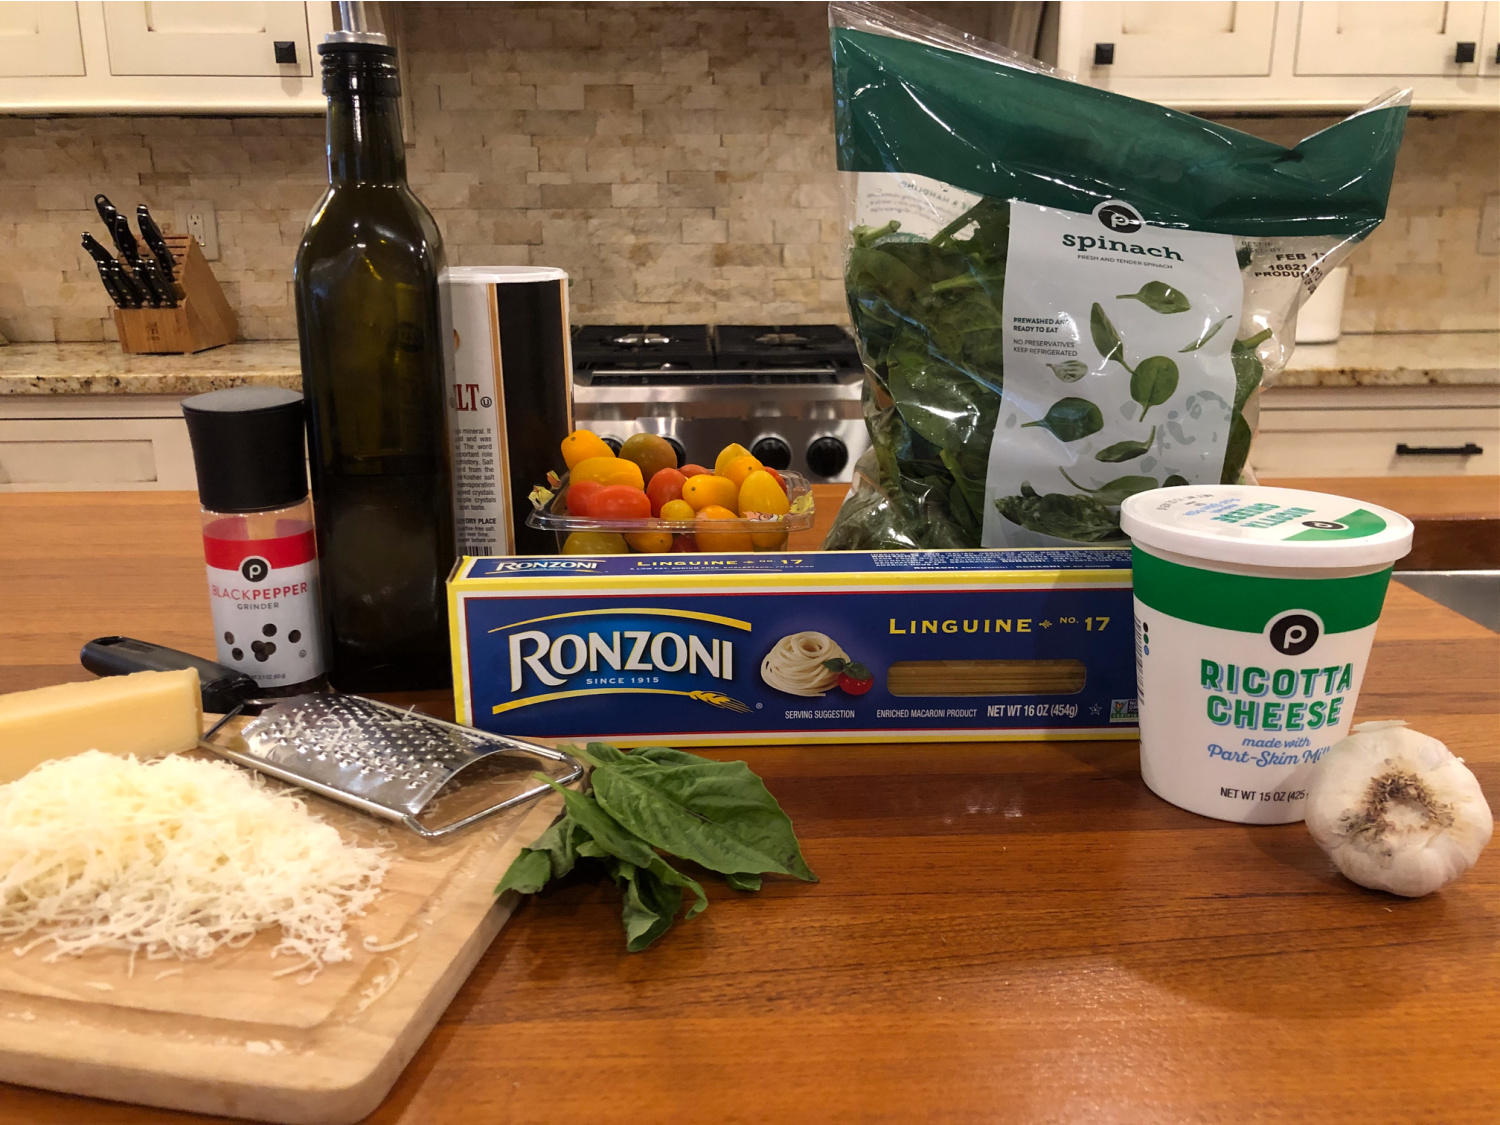 Spinach and Ricotta Linguine on I Heart Publix 1